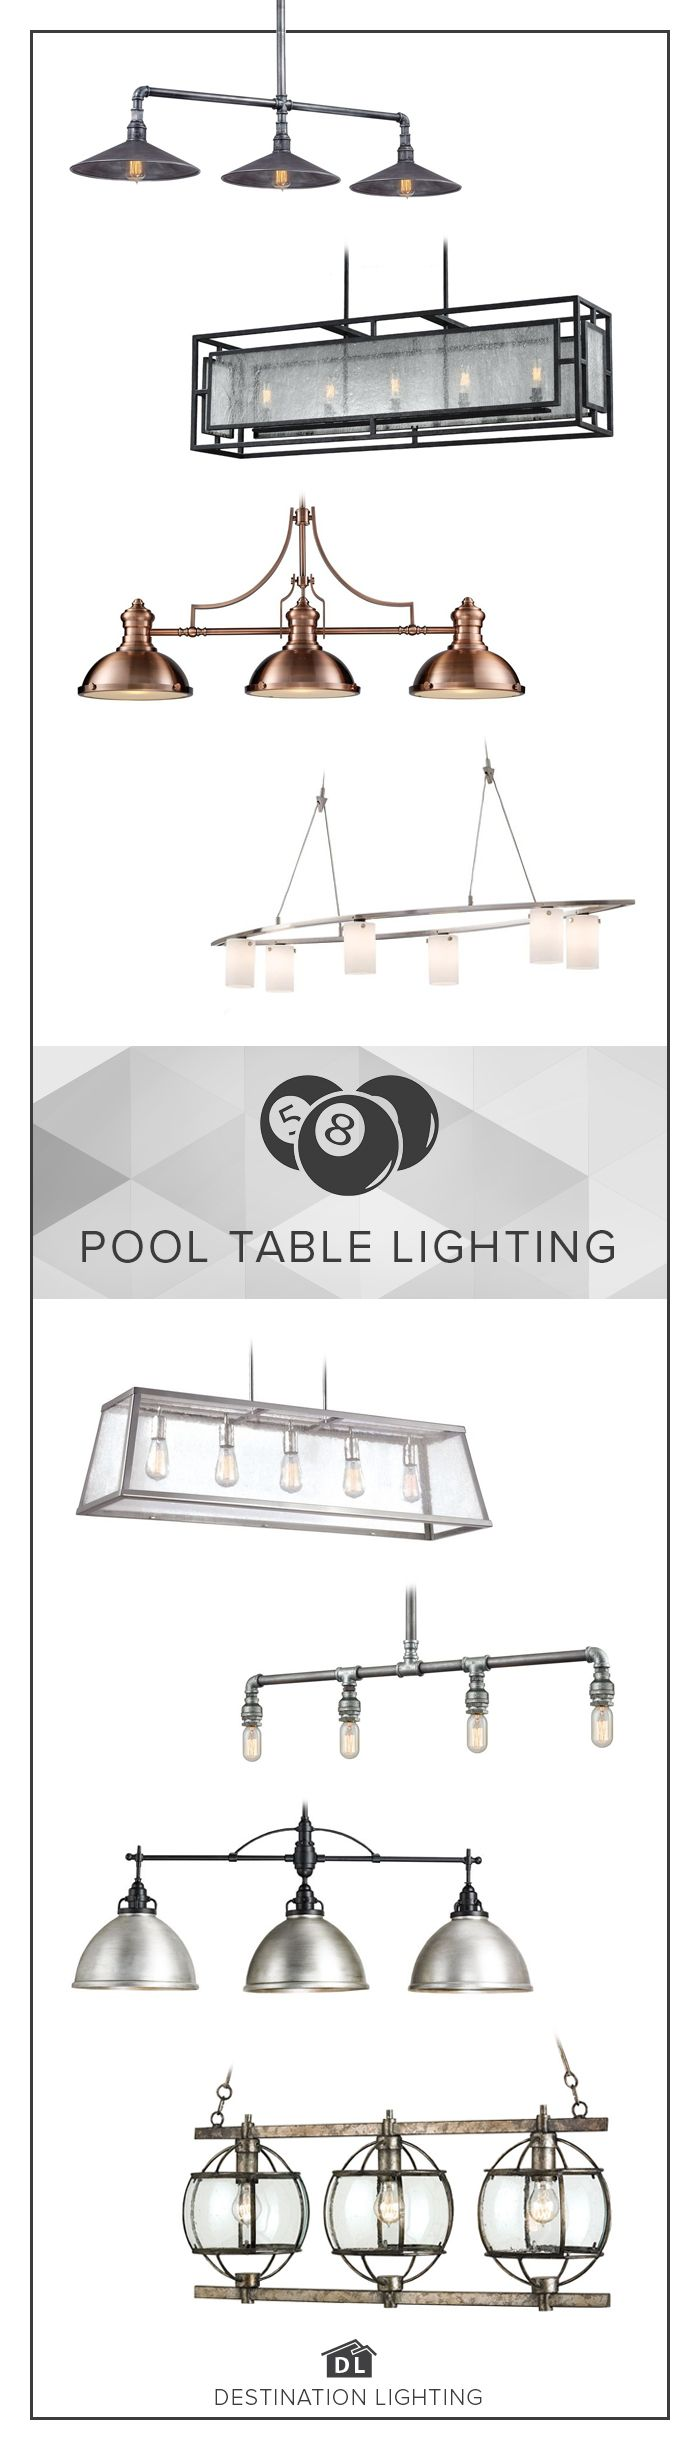 Refresh the lighting in your game room with these 8 gorgeous pool table lights.